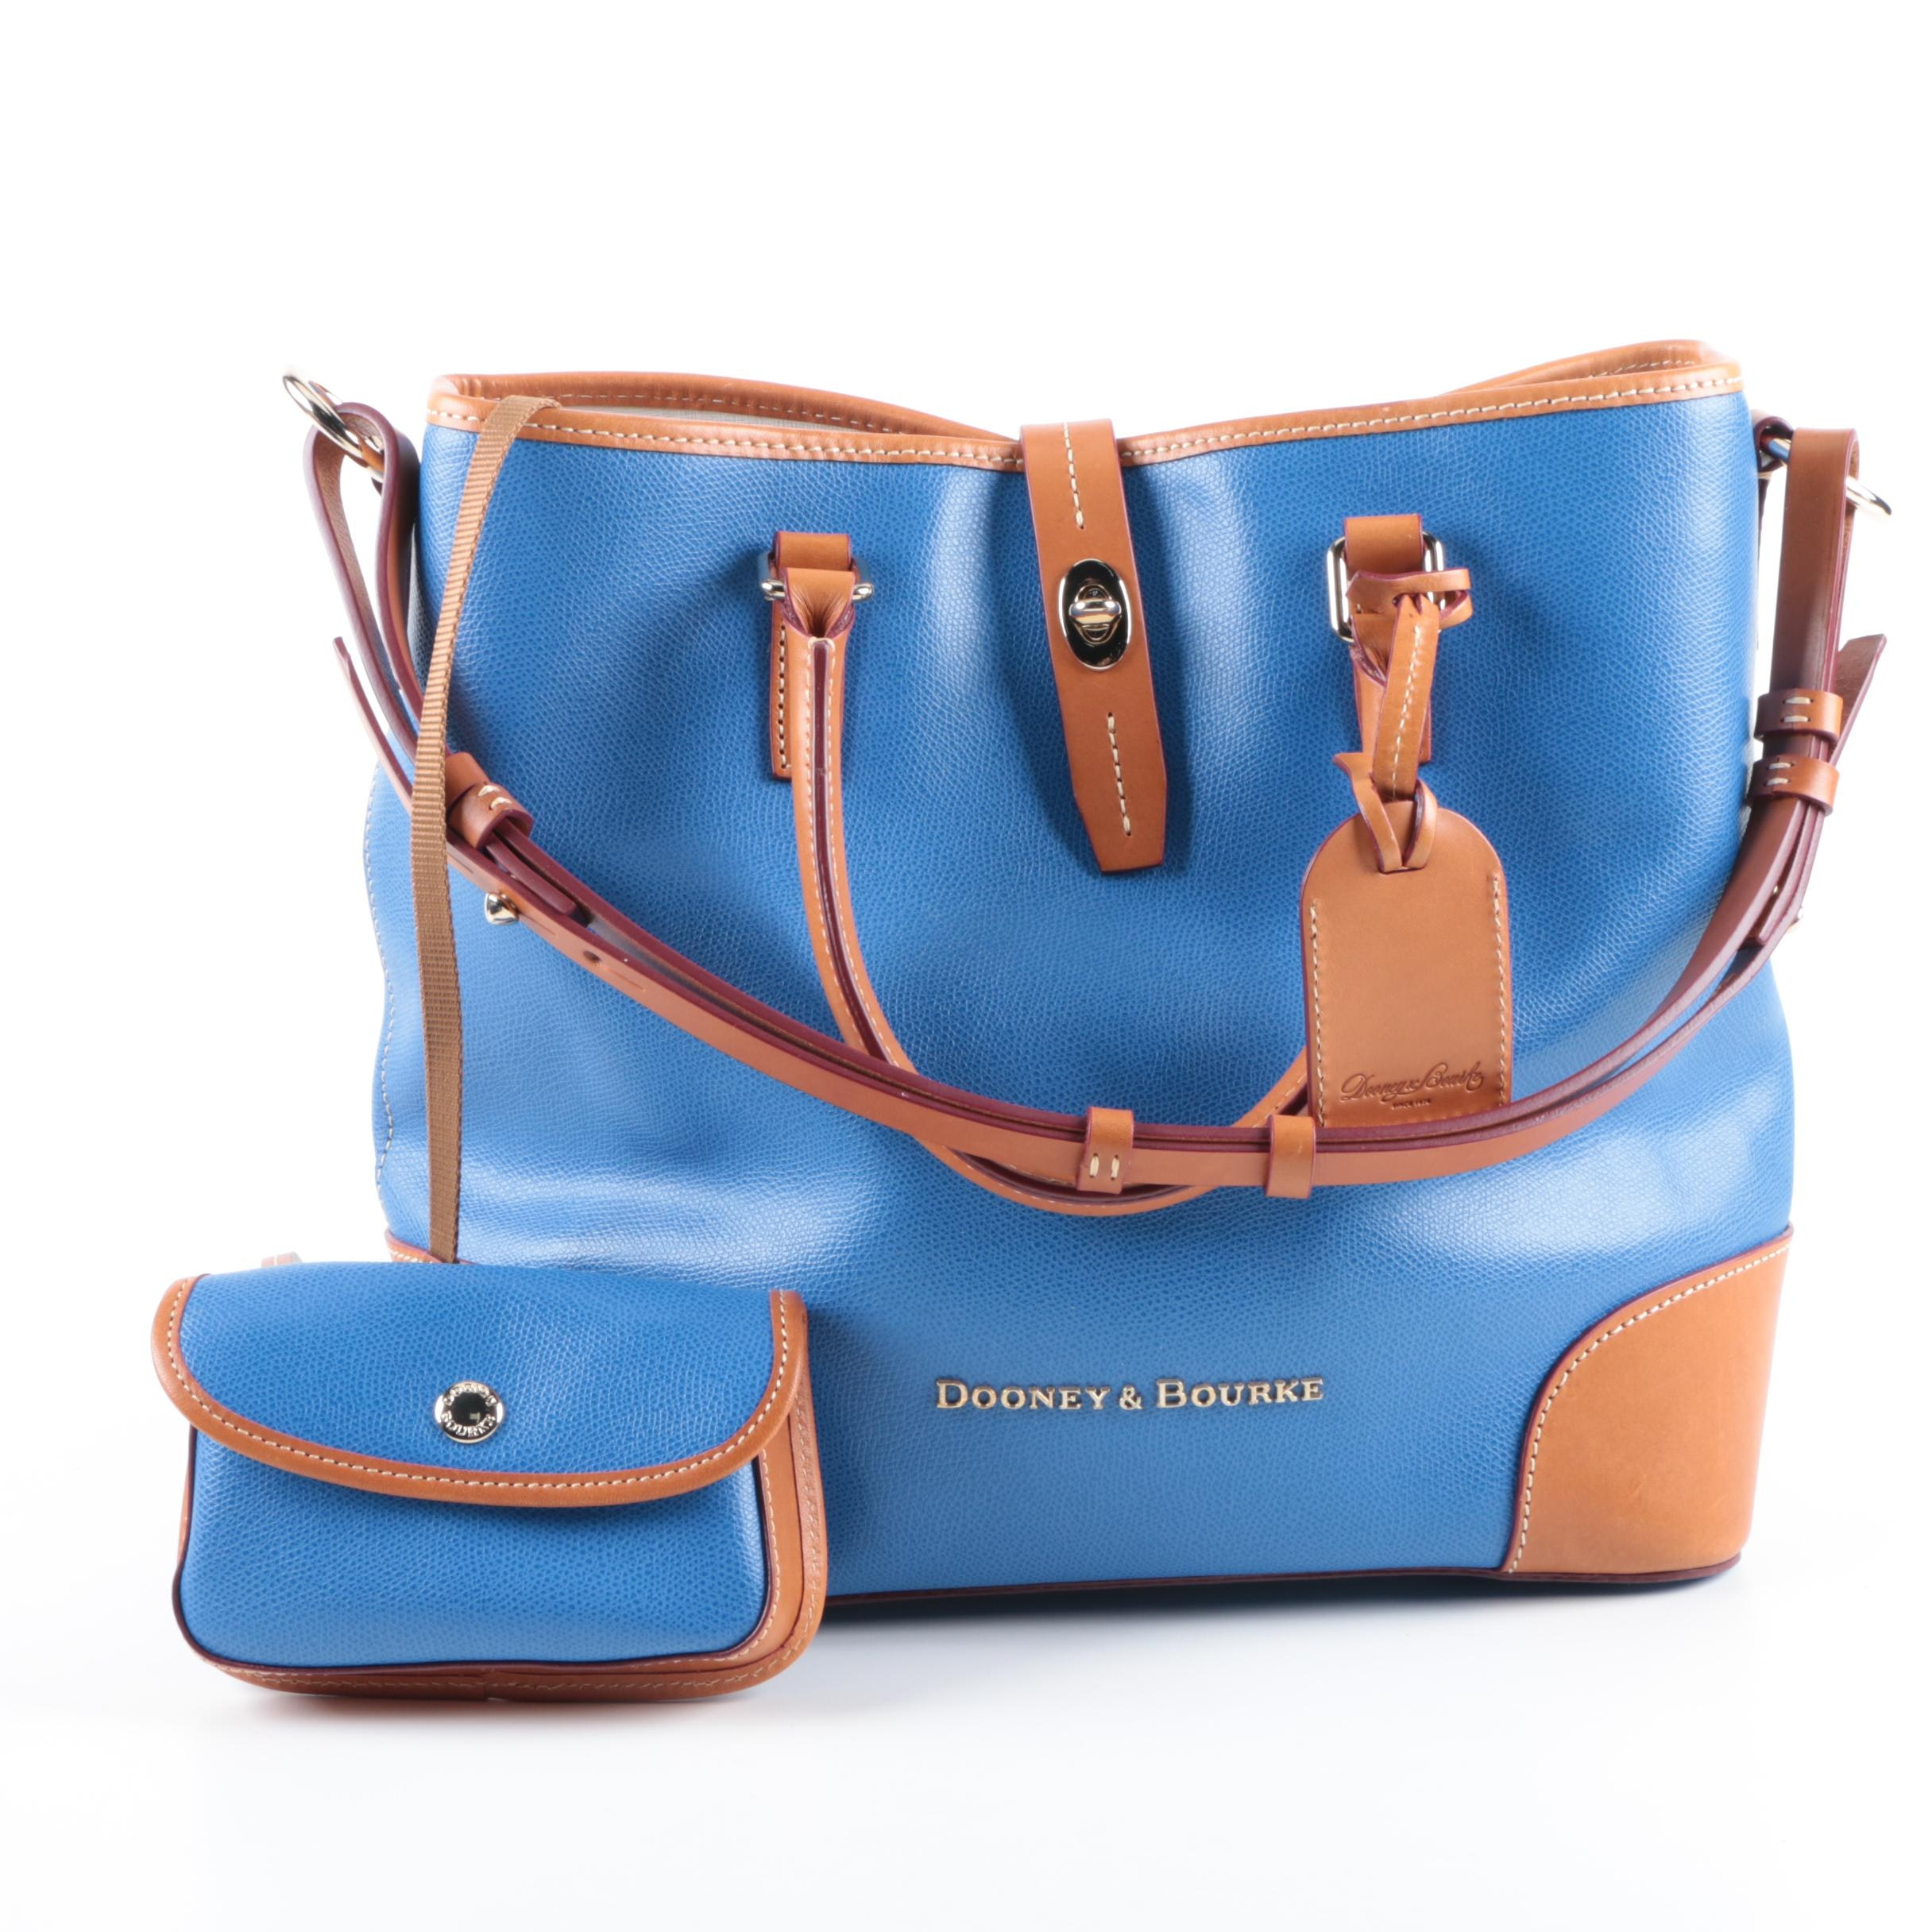 Dooney & Bourke Leather Carryall Tote